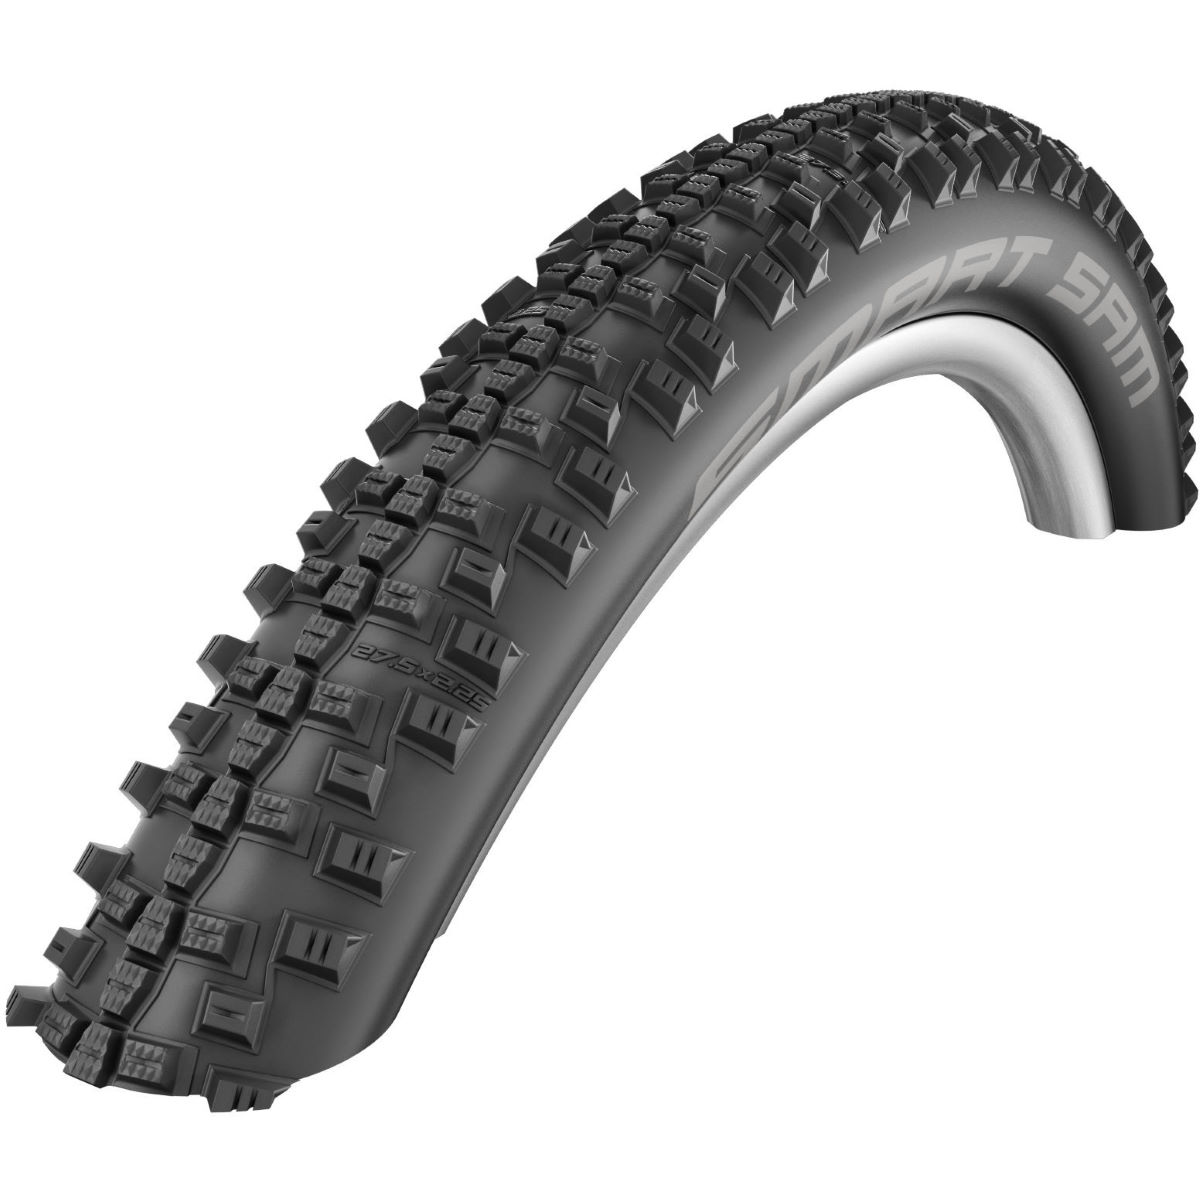 Pneu VTT Schwalbe Smart Sam Performance - 27.5' 2.25' Noir Pneus